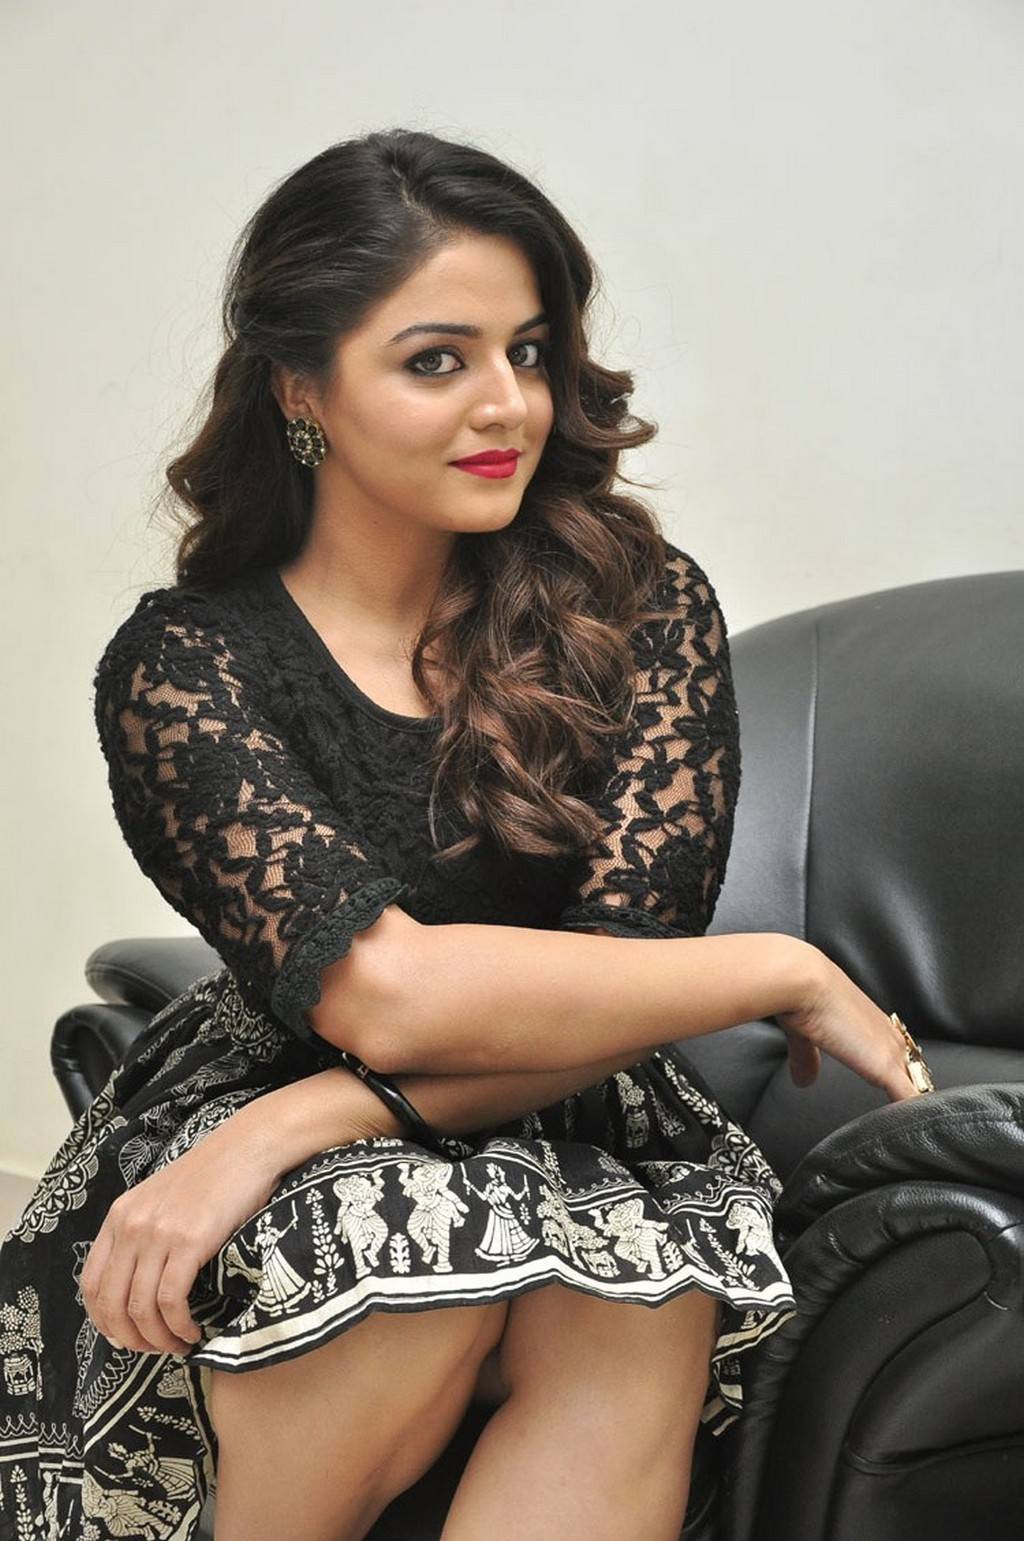 Kollywood Actress Wamiqa Gabbi Spicy Thigh Show In Mini Black Skirt